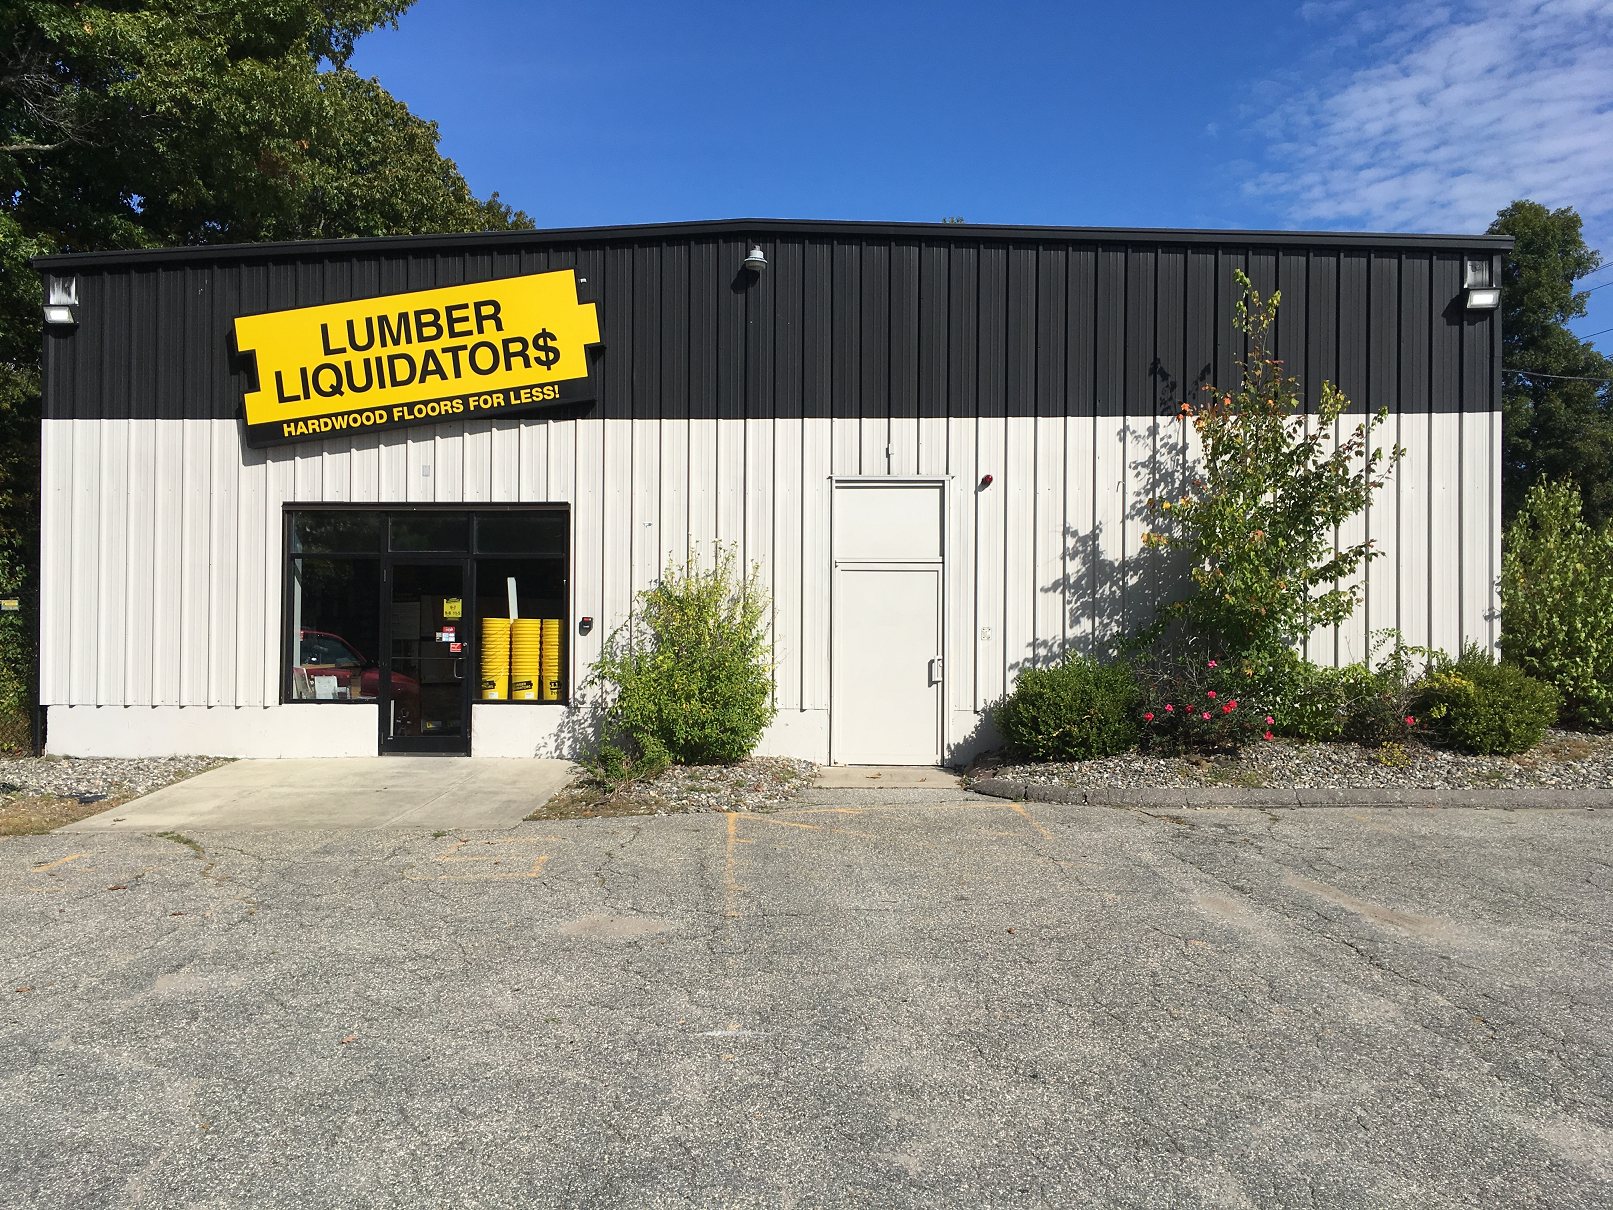 Lumber Liquidators Flooring #1305 Wilbraham | 2148 Boston Road | Store Front